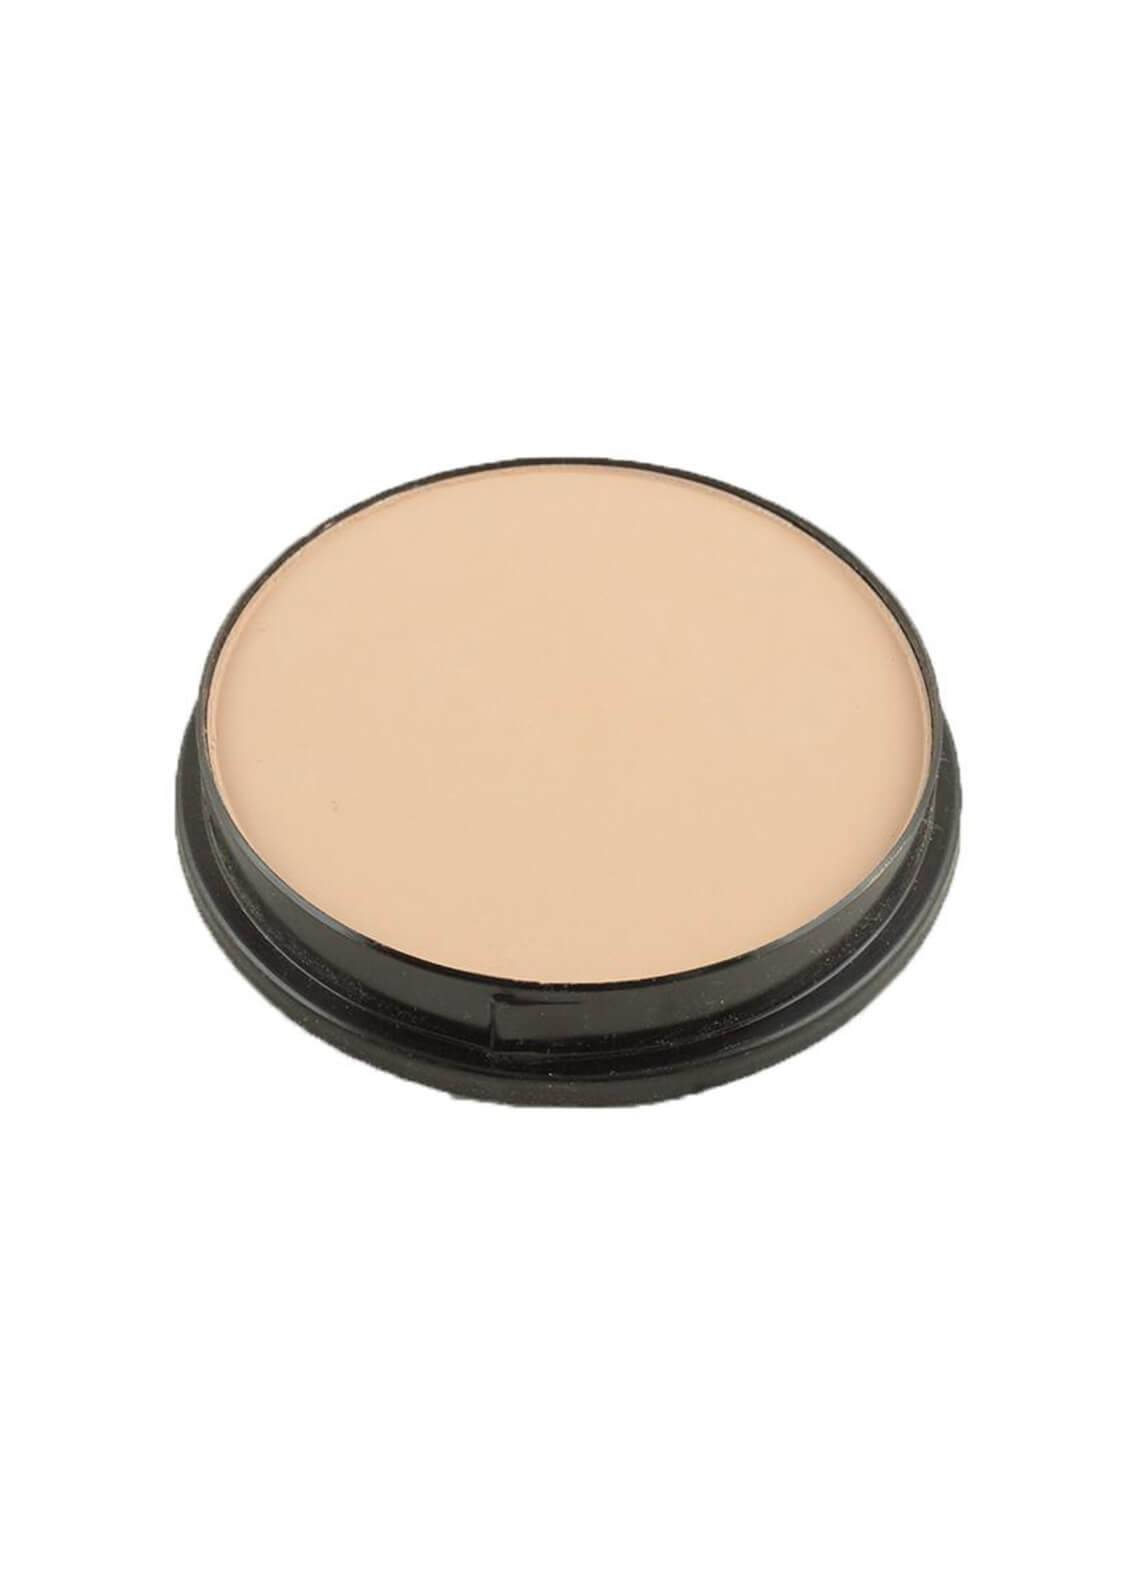 Sophia Asley Oil Free Pan Cake with SPF45 UV Protection - 3W